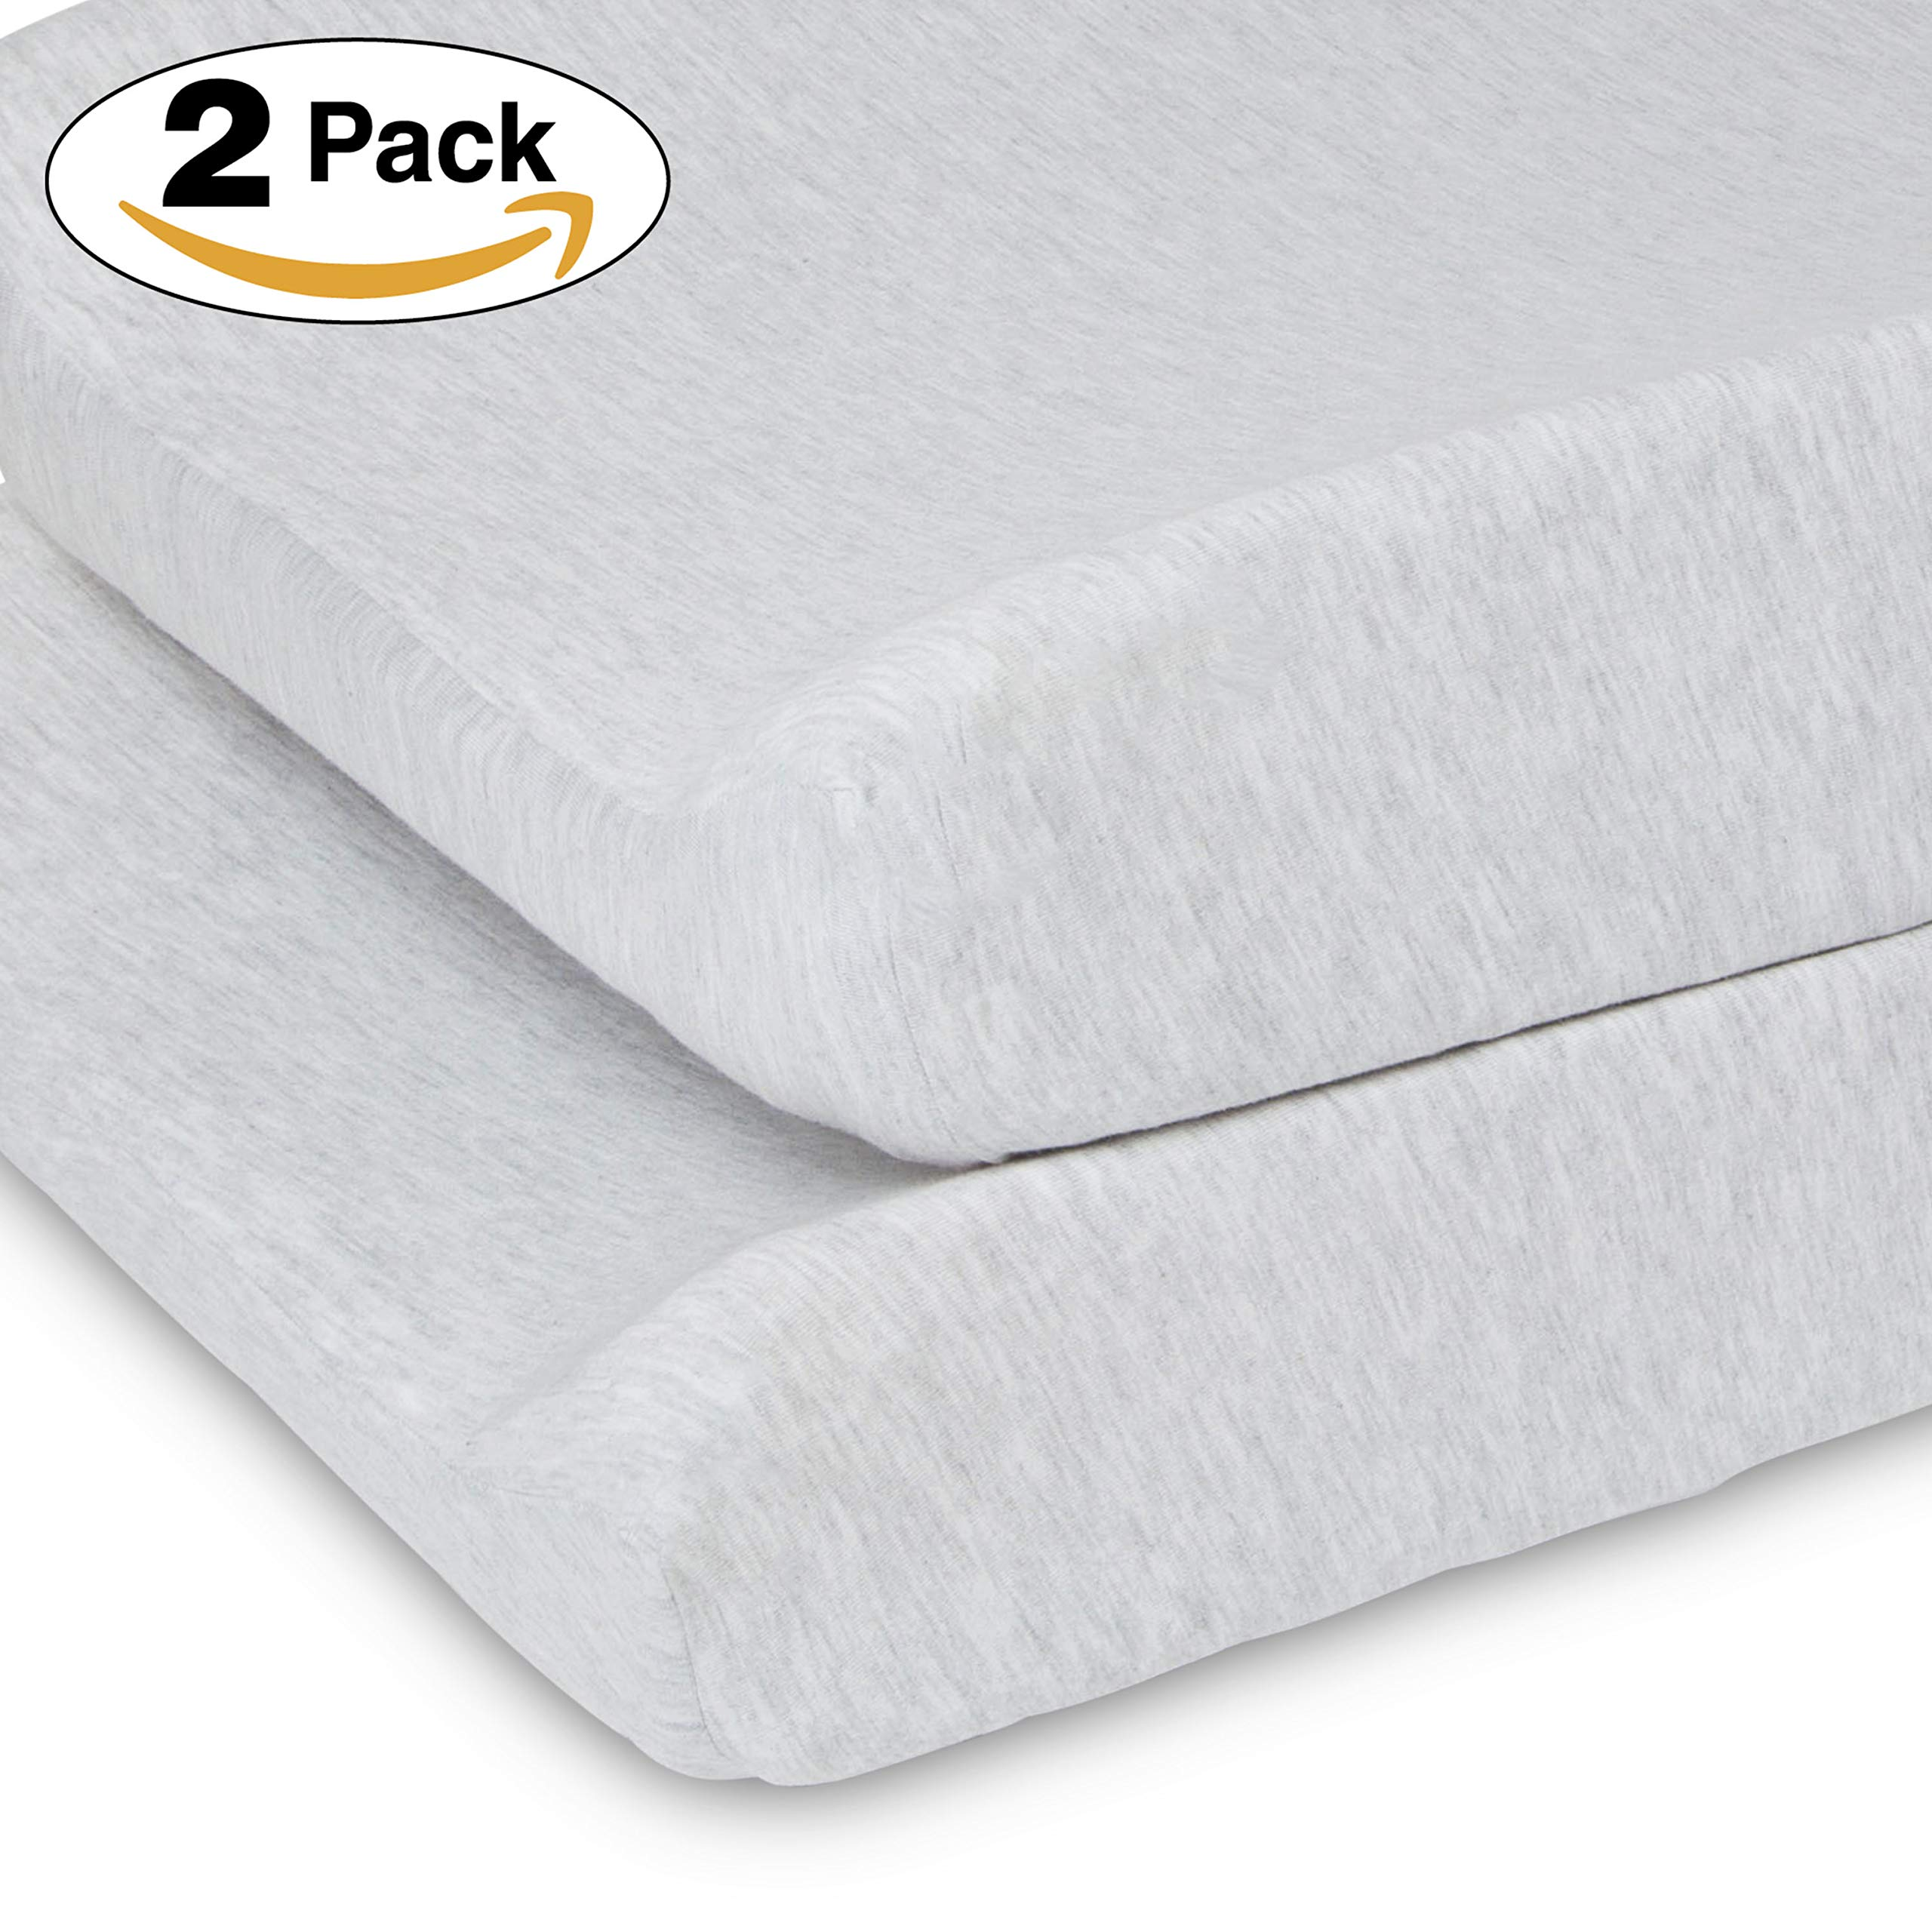 Delta Children Changing Pad Covers - 2 Pack | Solid Color | 100% Jersey Knit Cotton | Fits Standard Changing Pads, Heather Grey by Delta Children